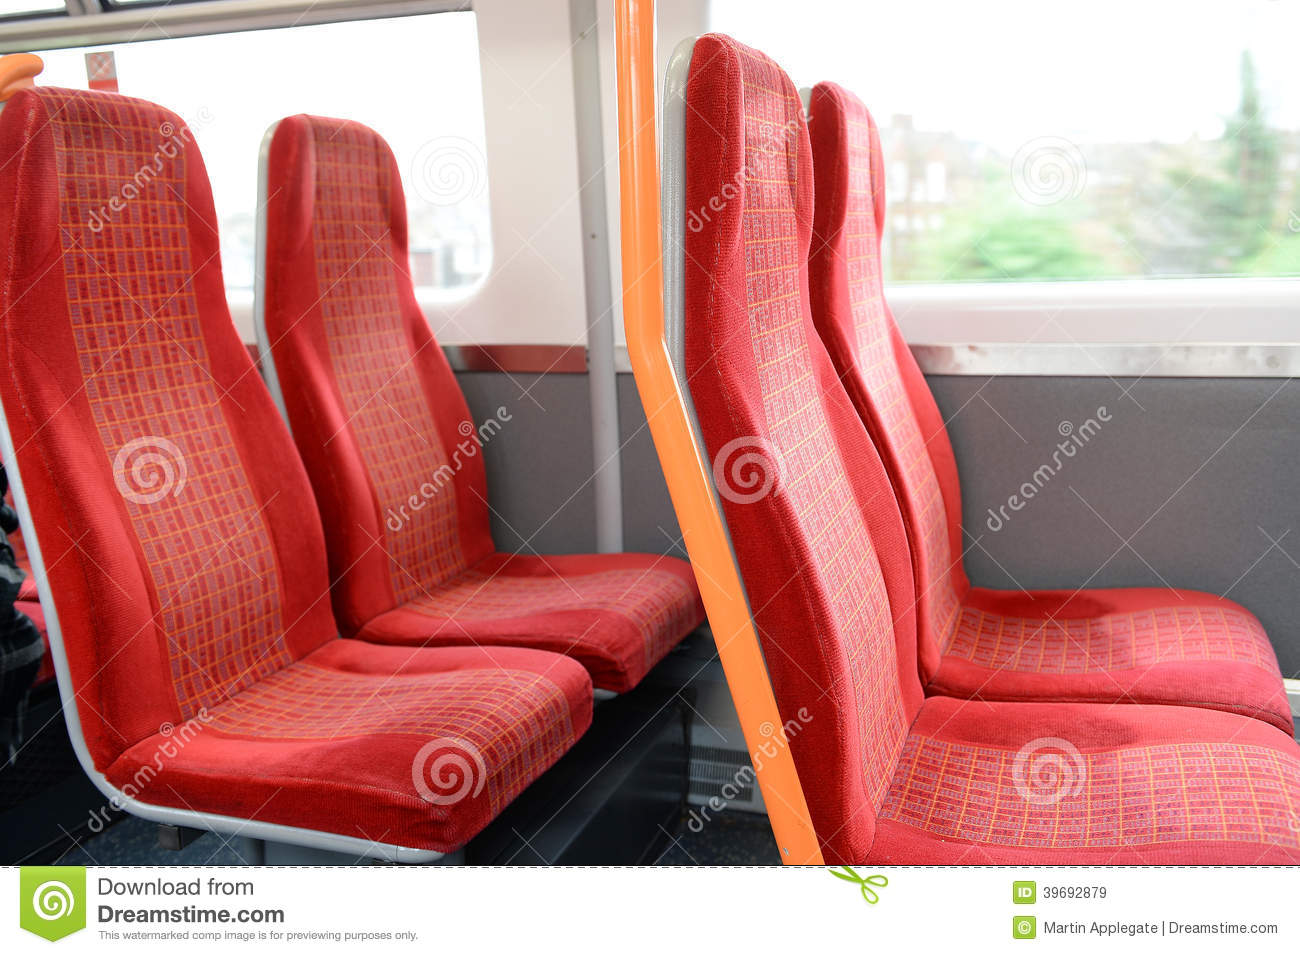 Vacant Red Seats In A Train Stock Photo - Image: 39692879